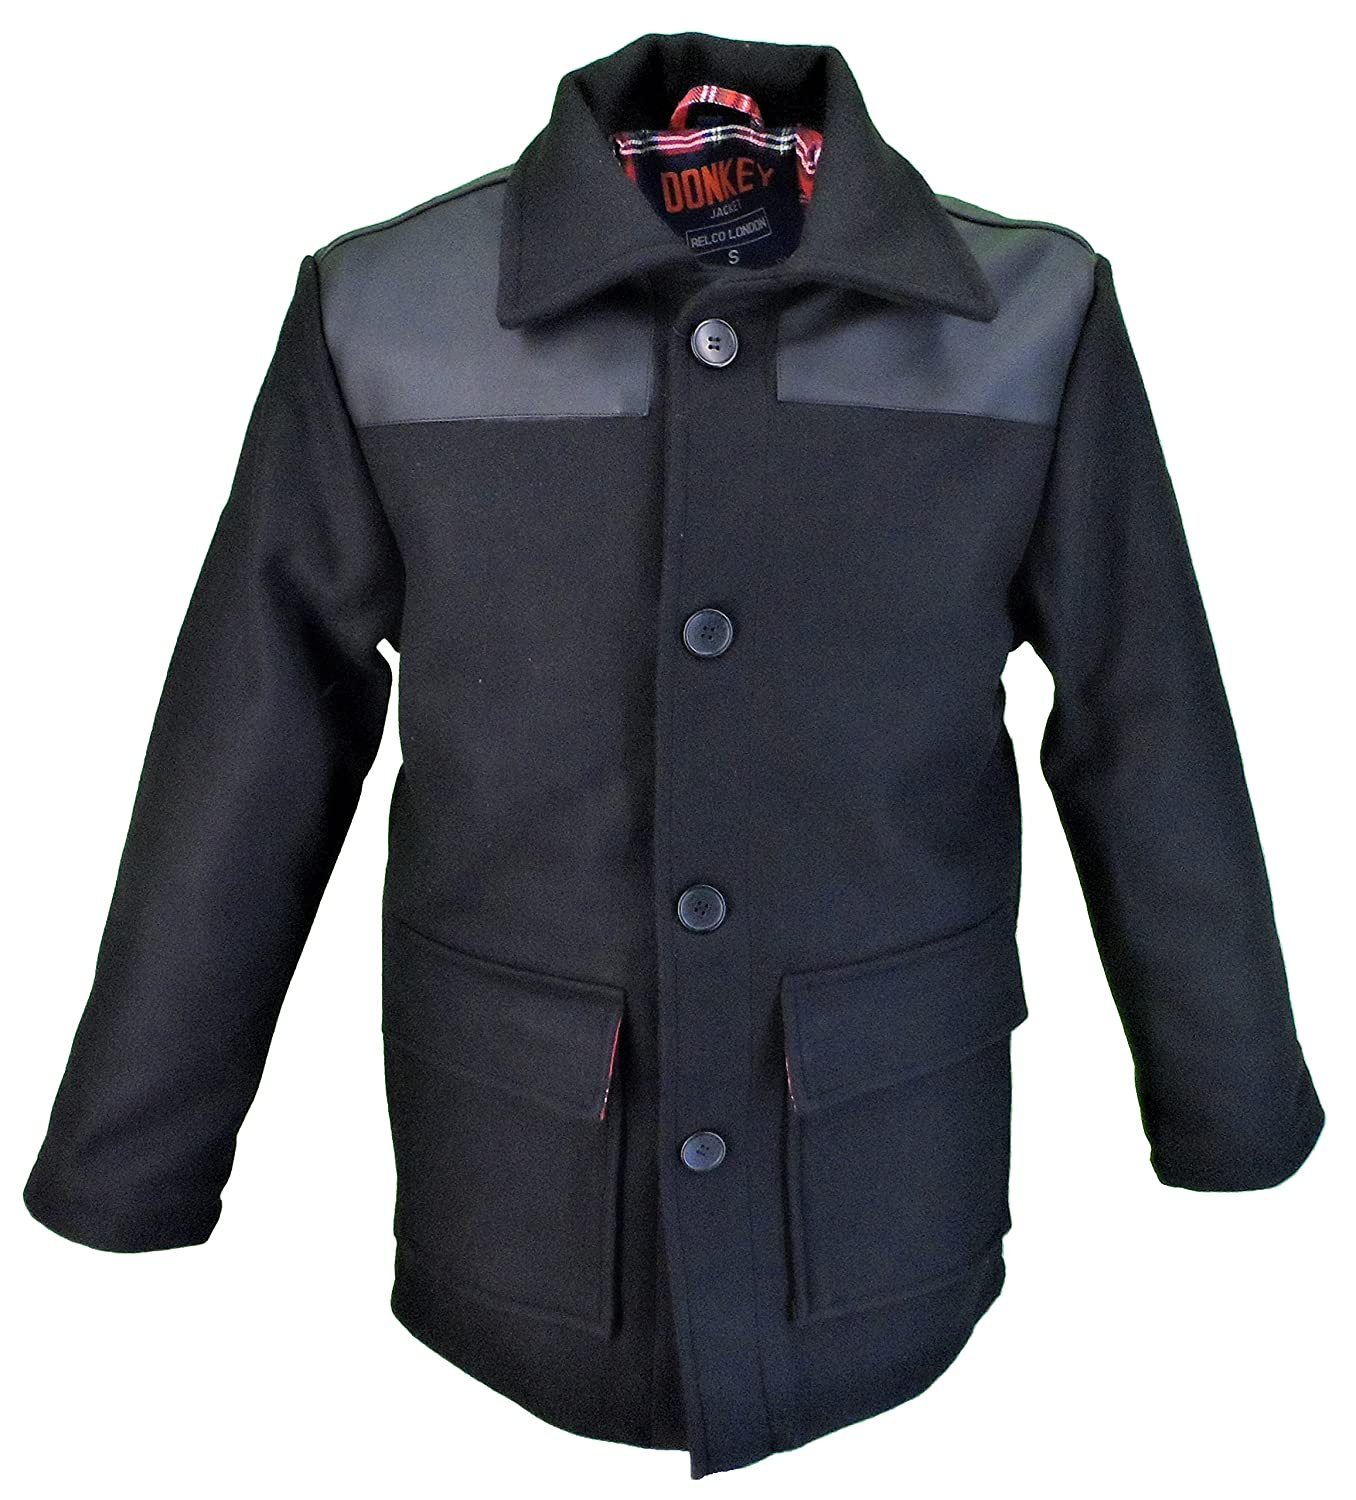 Men's Vintage Style Coats and Jackets Relco Mens Retro Donkey Jacket £84.99 AT vintagedancer.com